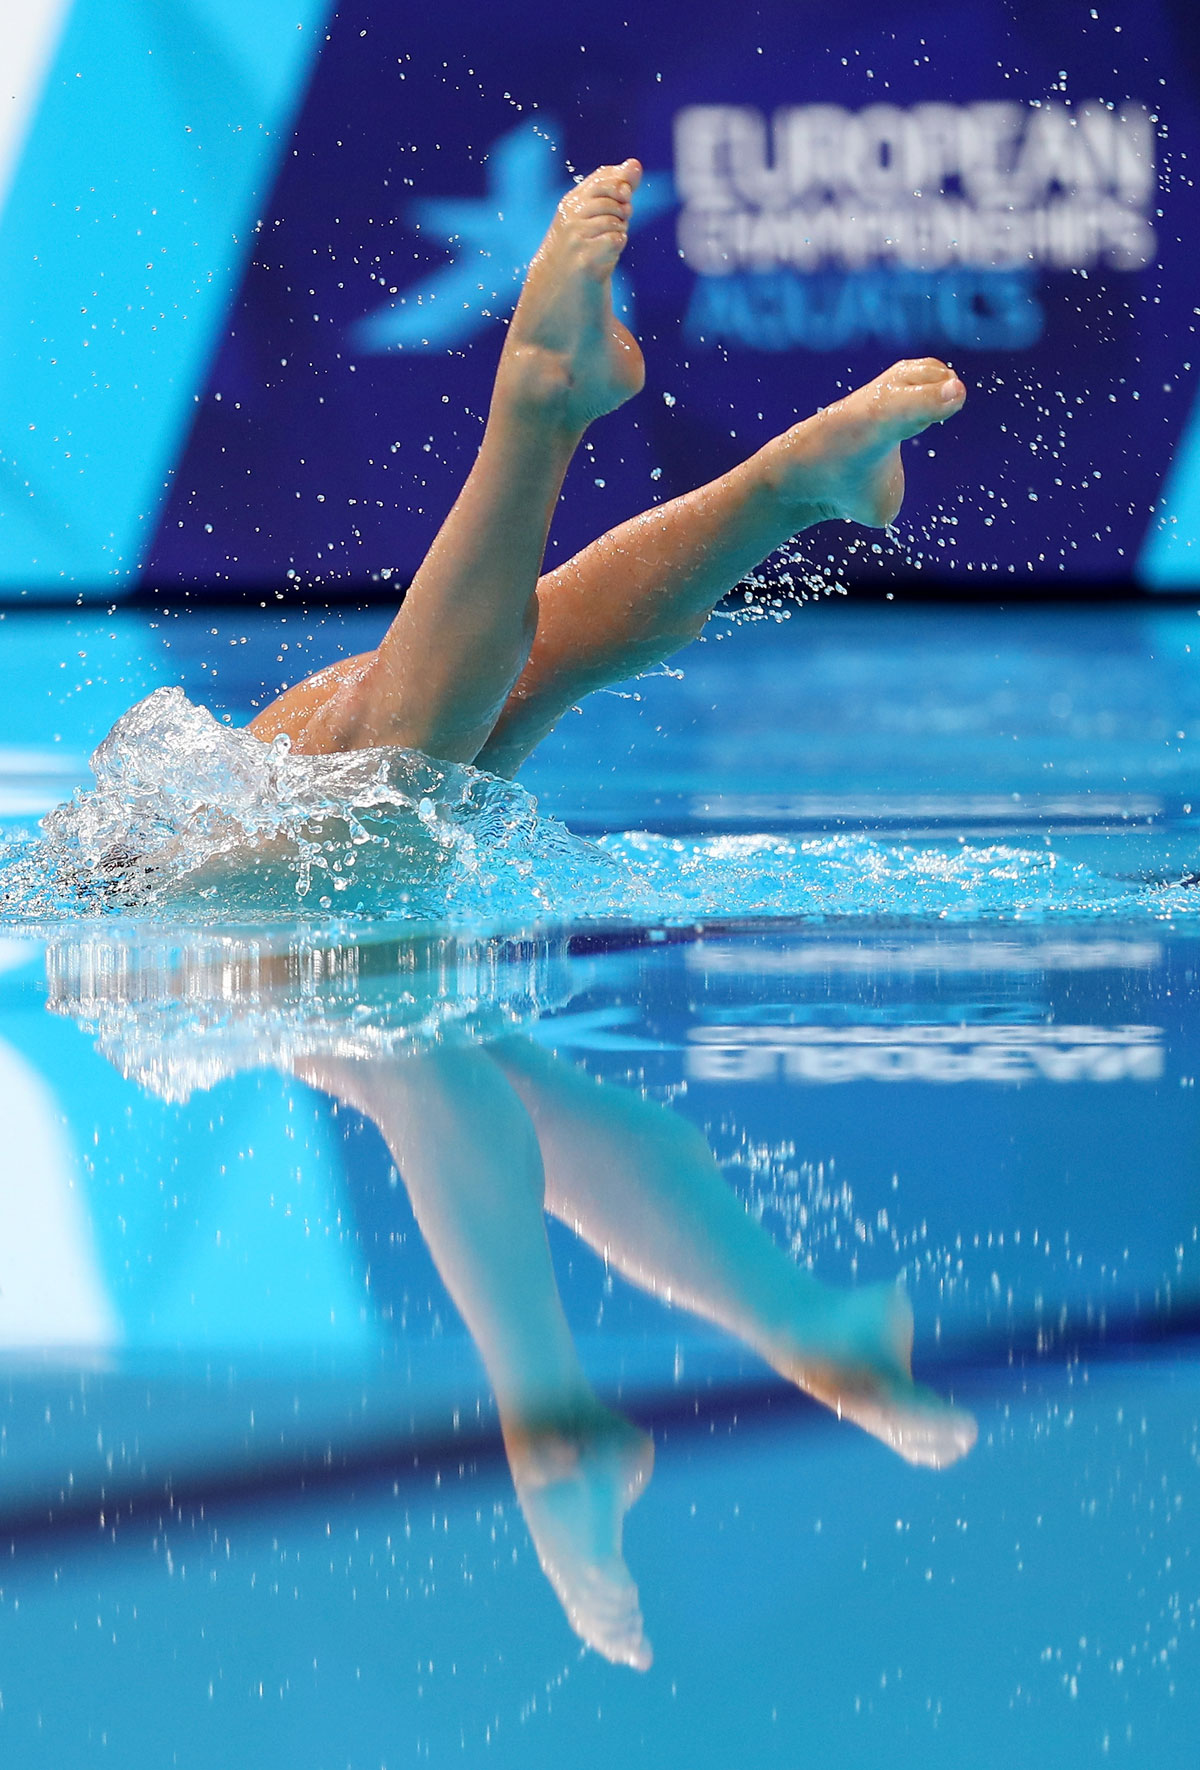 Greece'S Evangelia Platanioti competes in the Solo Free Routine, Preliminary round during the Synchronised Swimming on Day Four of the European Championships at Scotstoun Sports Campus in Glasgow on August 5